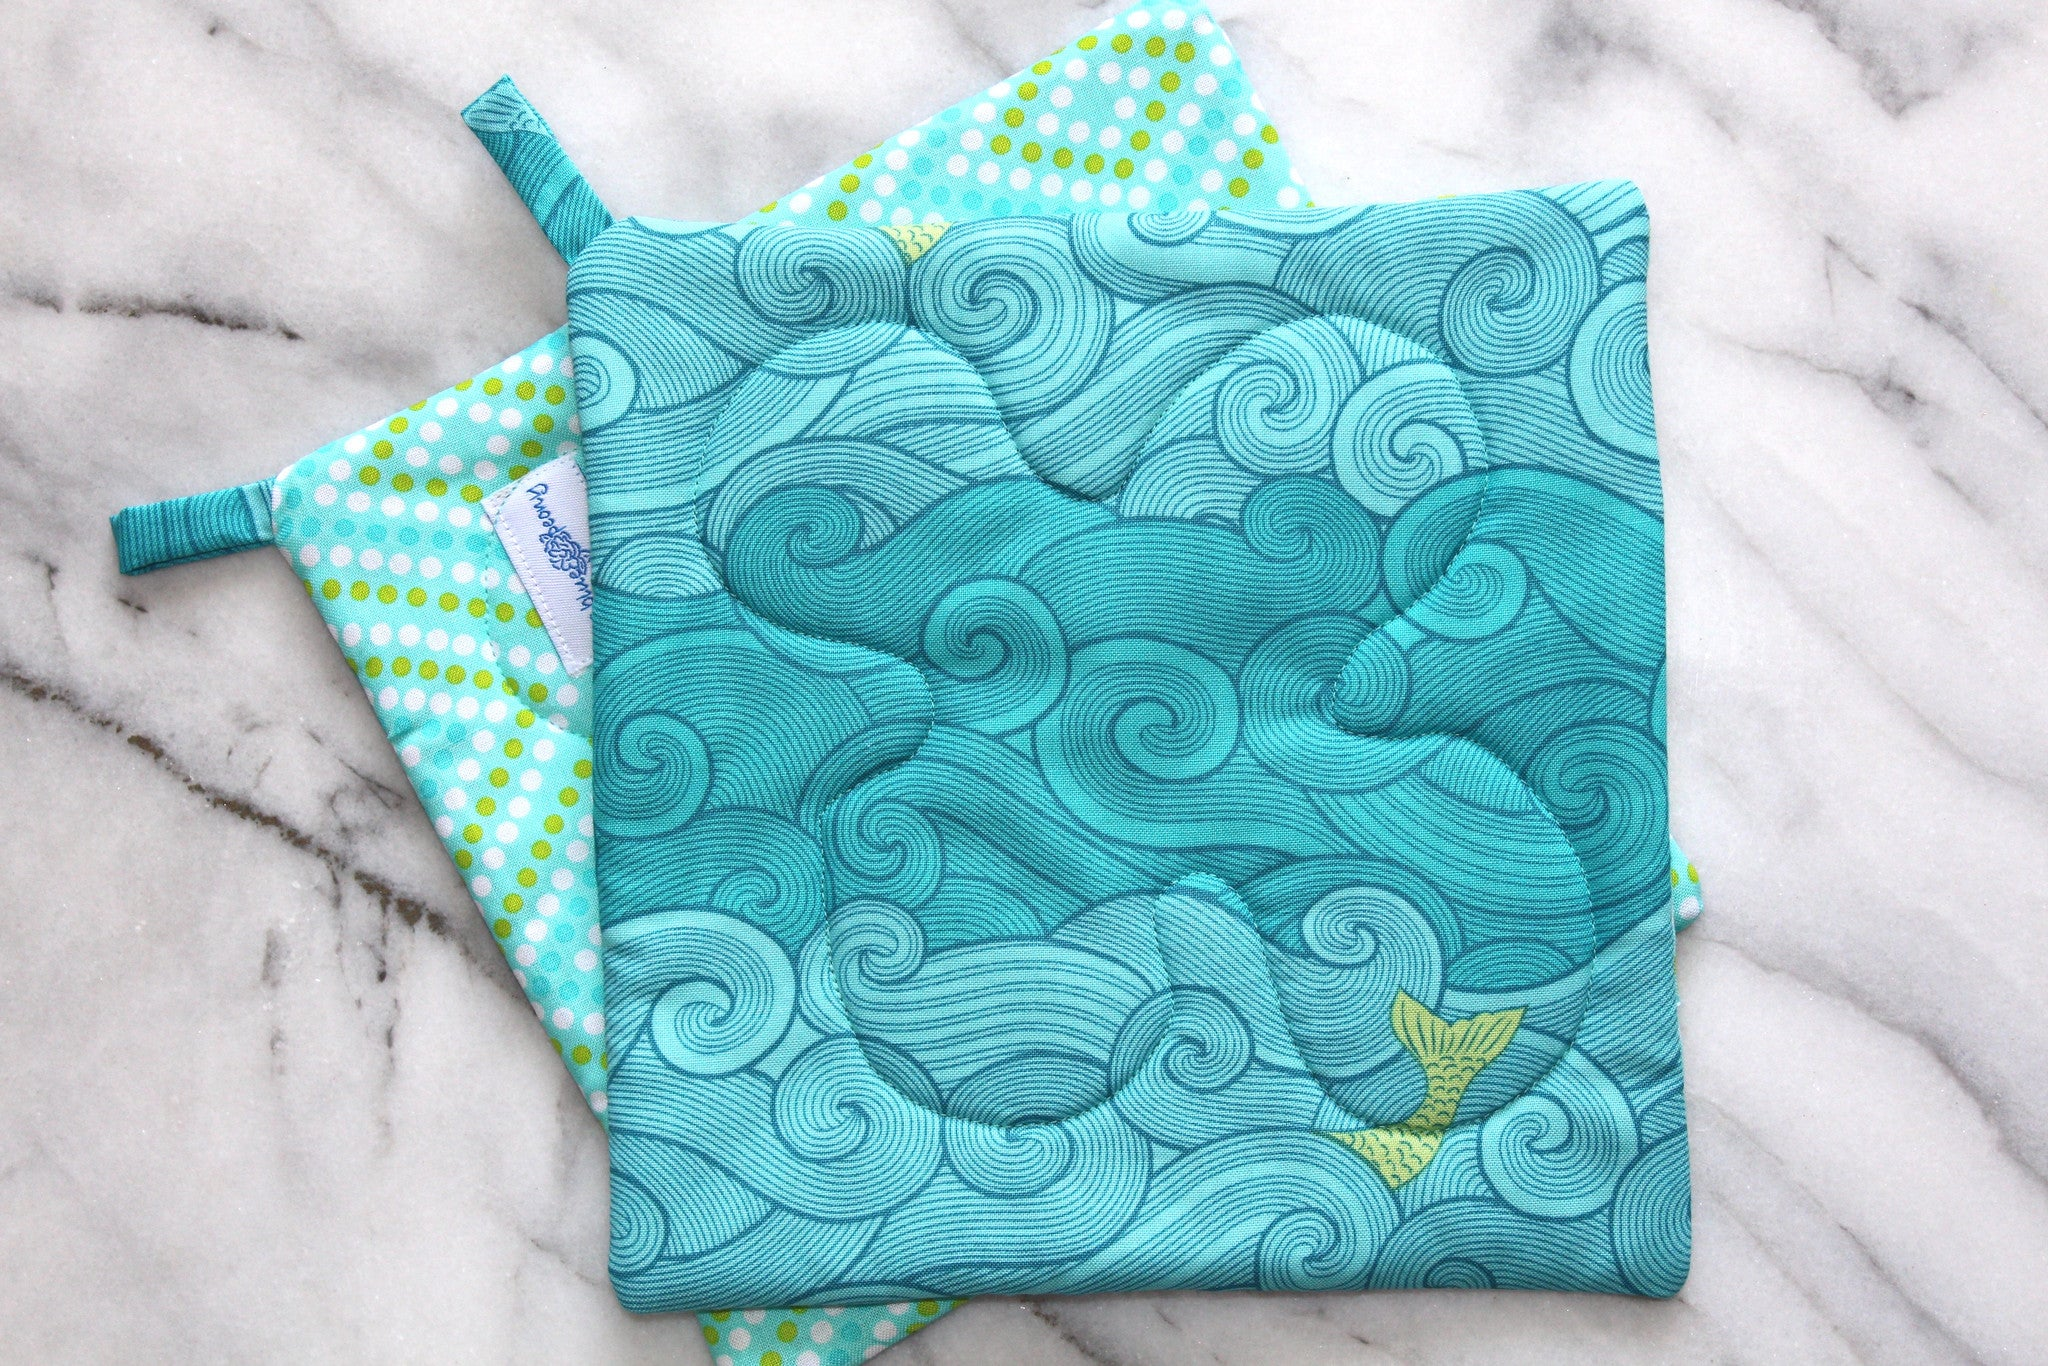 Surfside Potholder